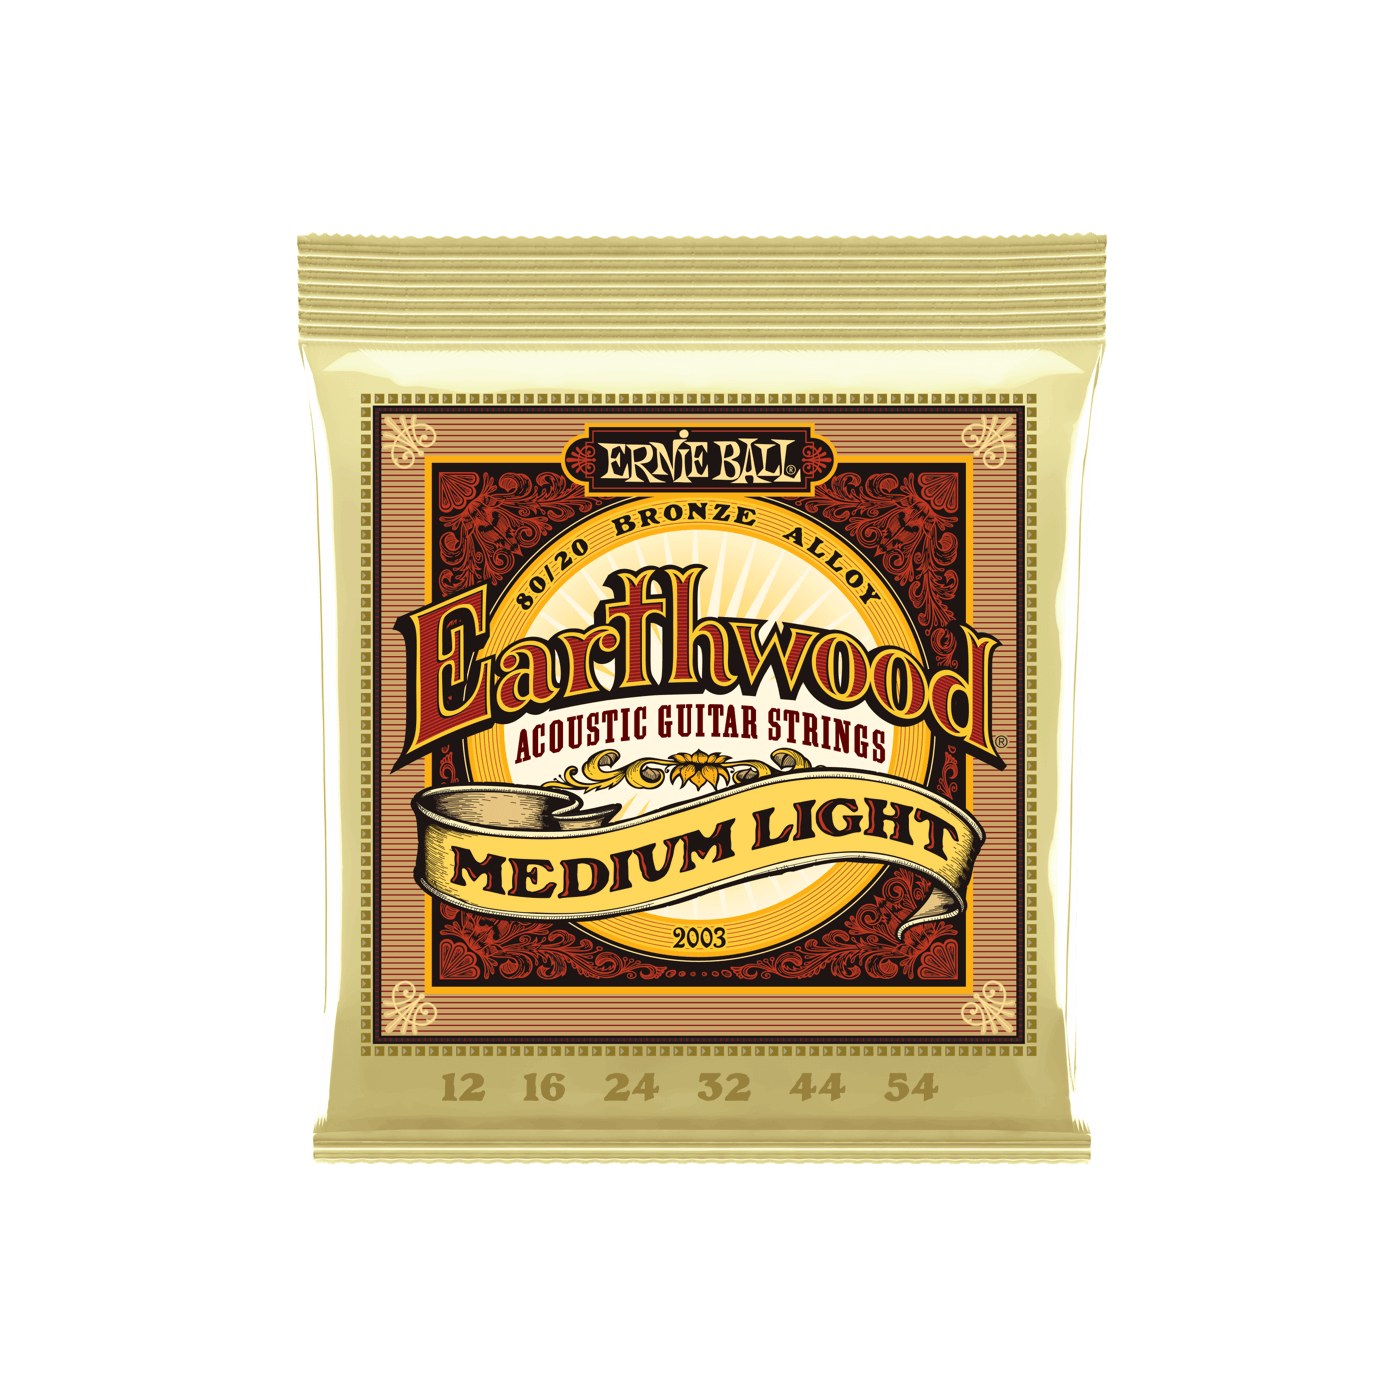 Ernie Ball NEW Ernie Ball Earthwood 80/20 Acoustic Strings - Medium Light - .012-.54